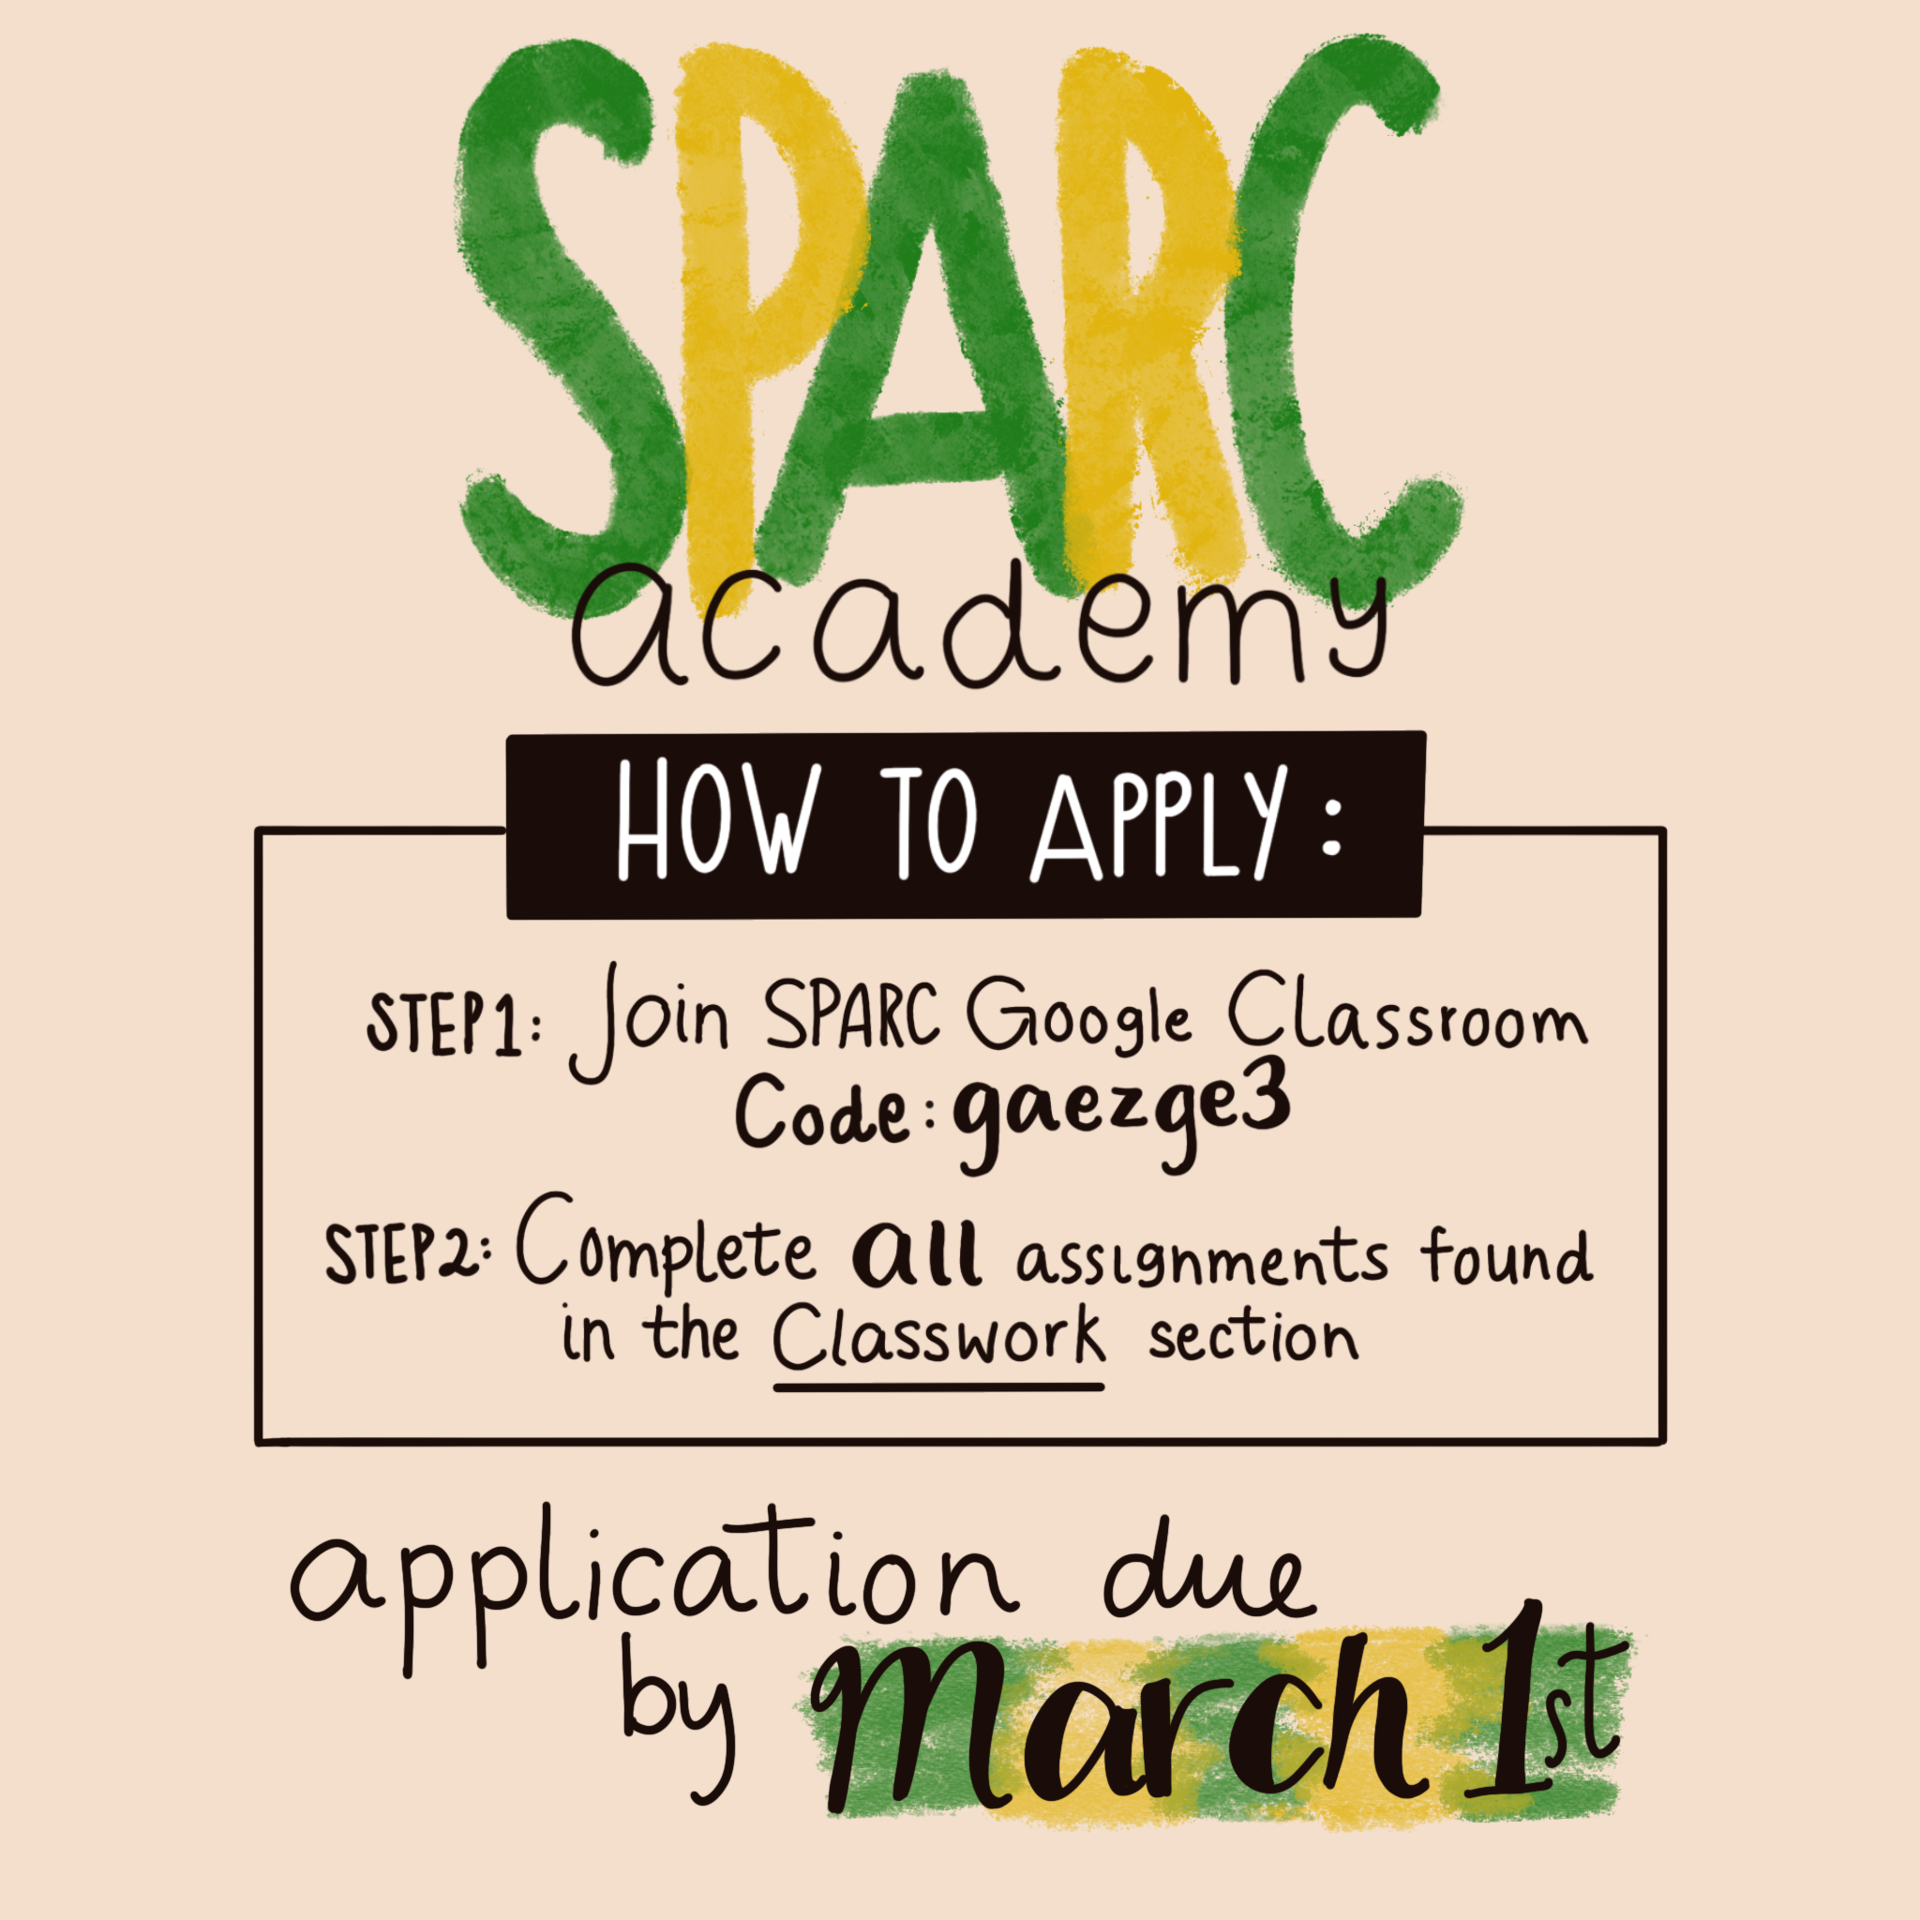 SPARC application